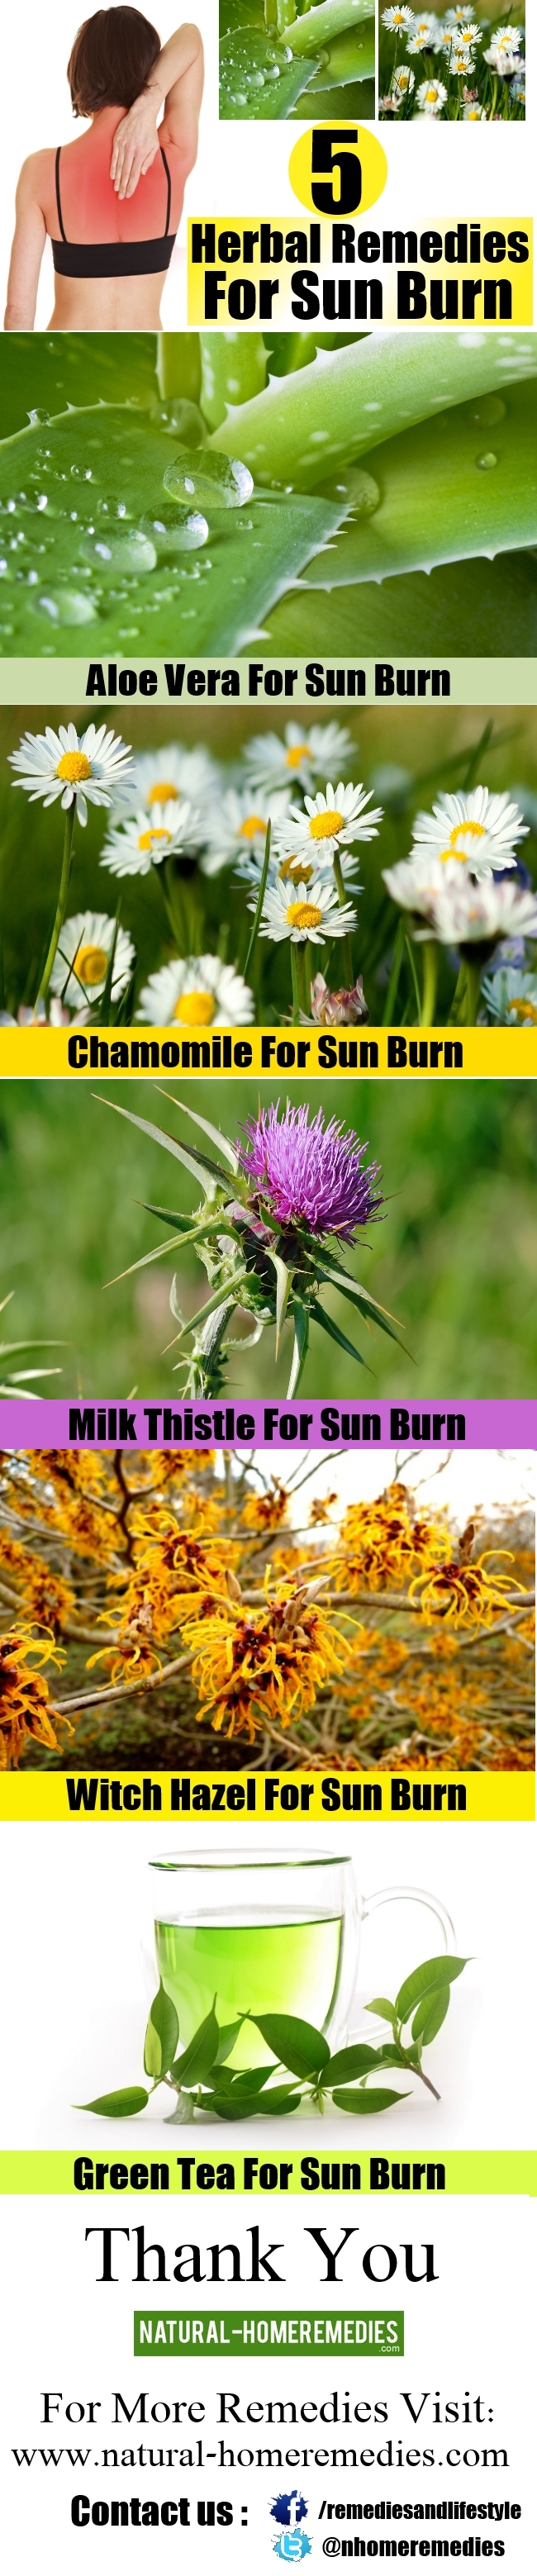 5 Major Herbal Remedies For Sun Burn